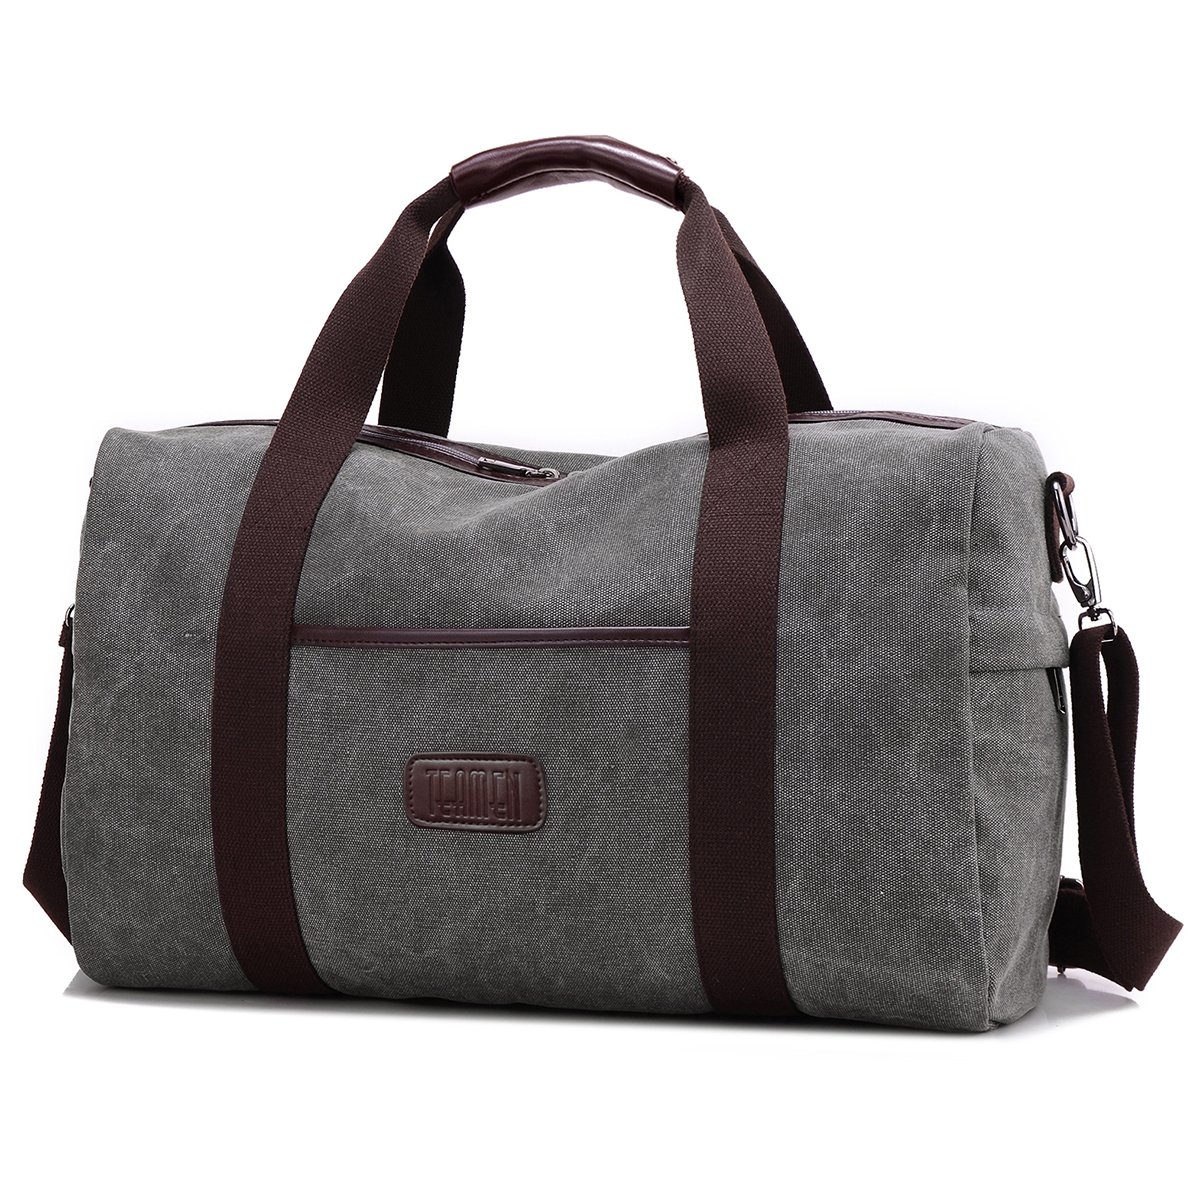 15267acf60 Travel Duffel Bag Totes TEAMEN Canvas HandBag PU Leather Weekender Overnight  Holdall 20L for Gym Sports Travel Work School and Daily use(Gray).